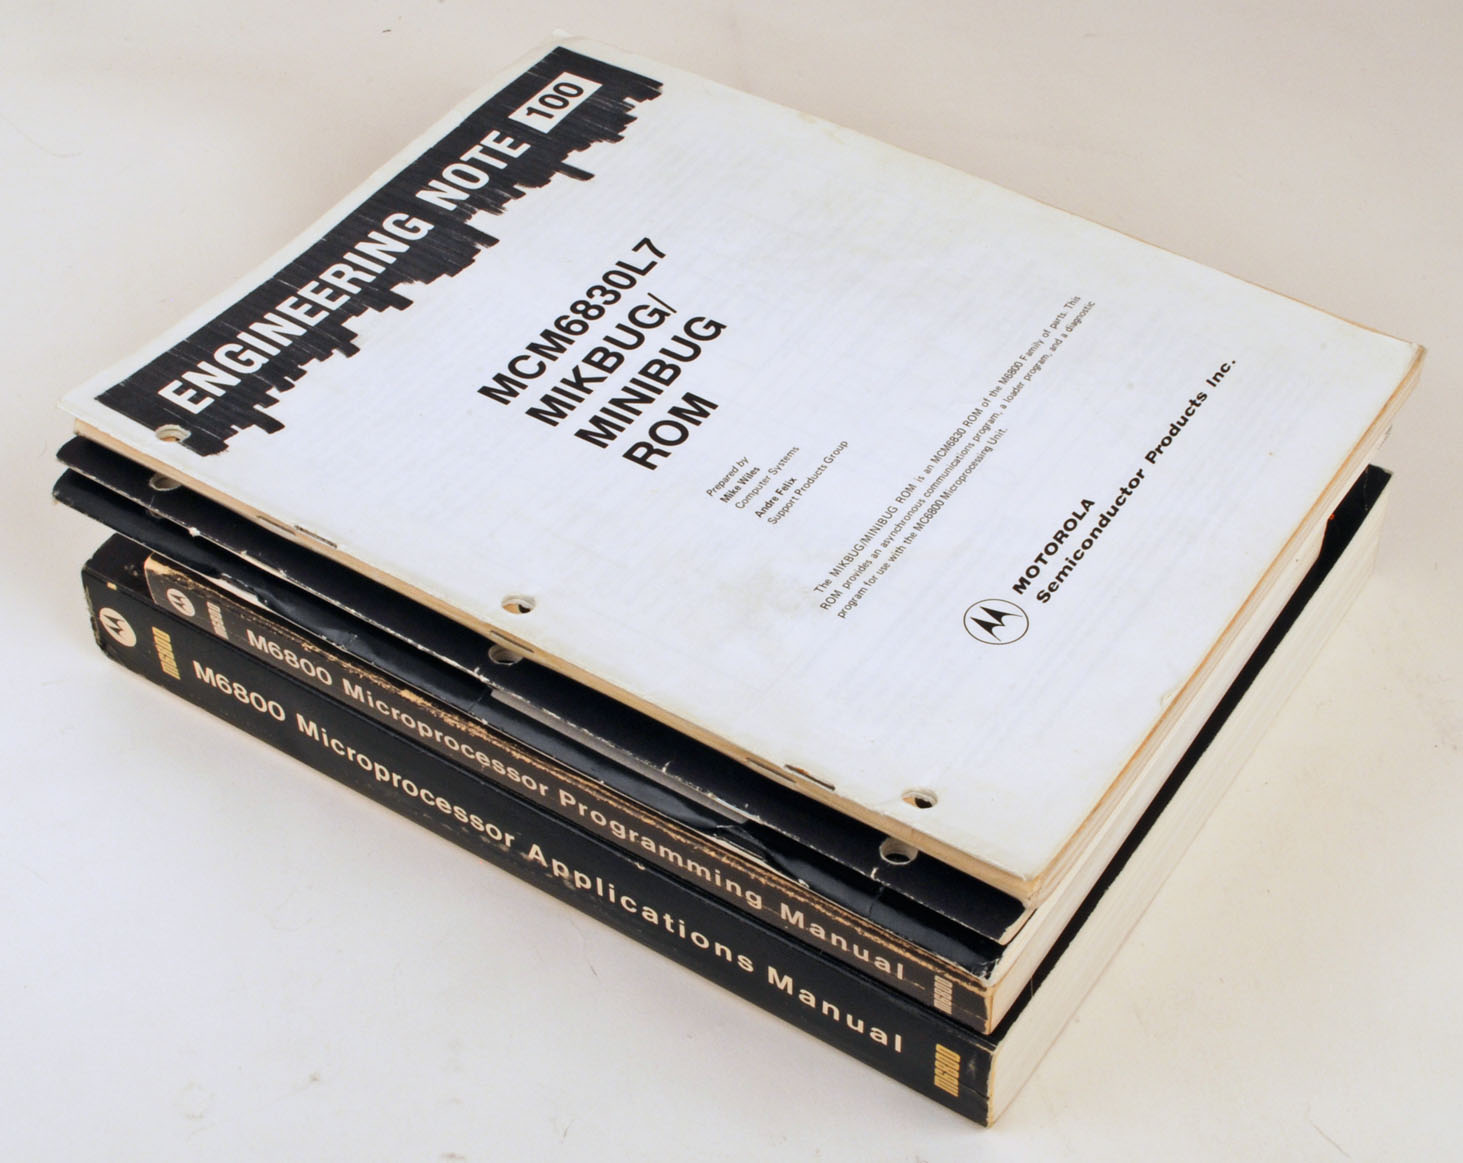 Microprocessor Systems Design By Edwin E Klingman